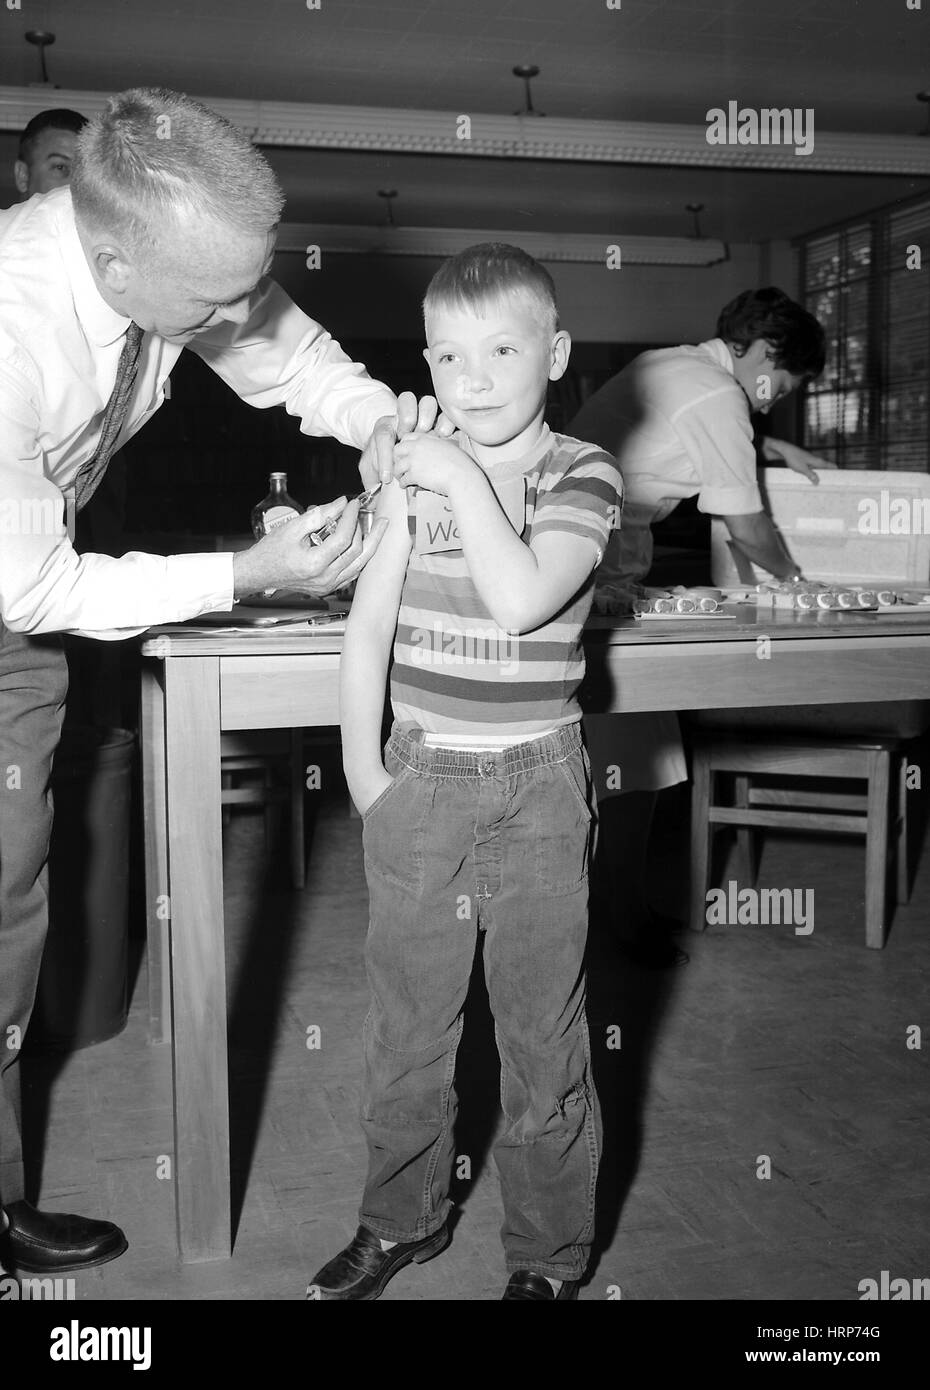 Measles Vaccination, 1962 - Stock Image